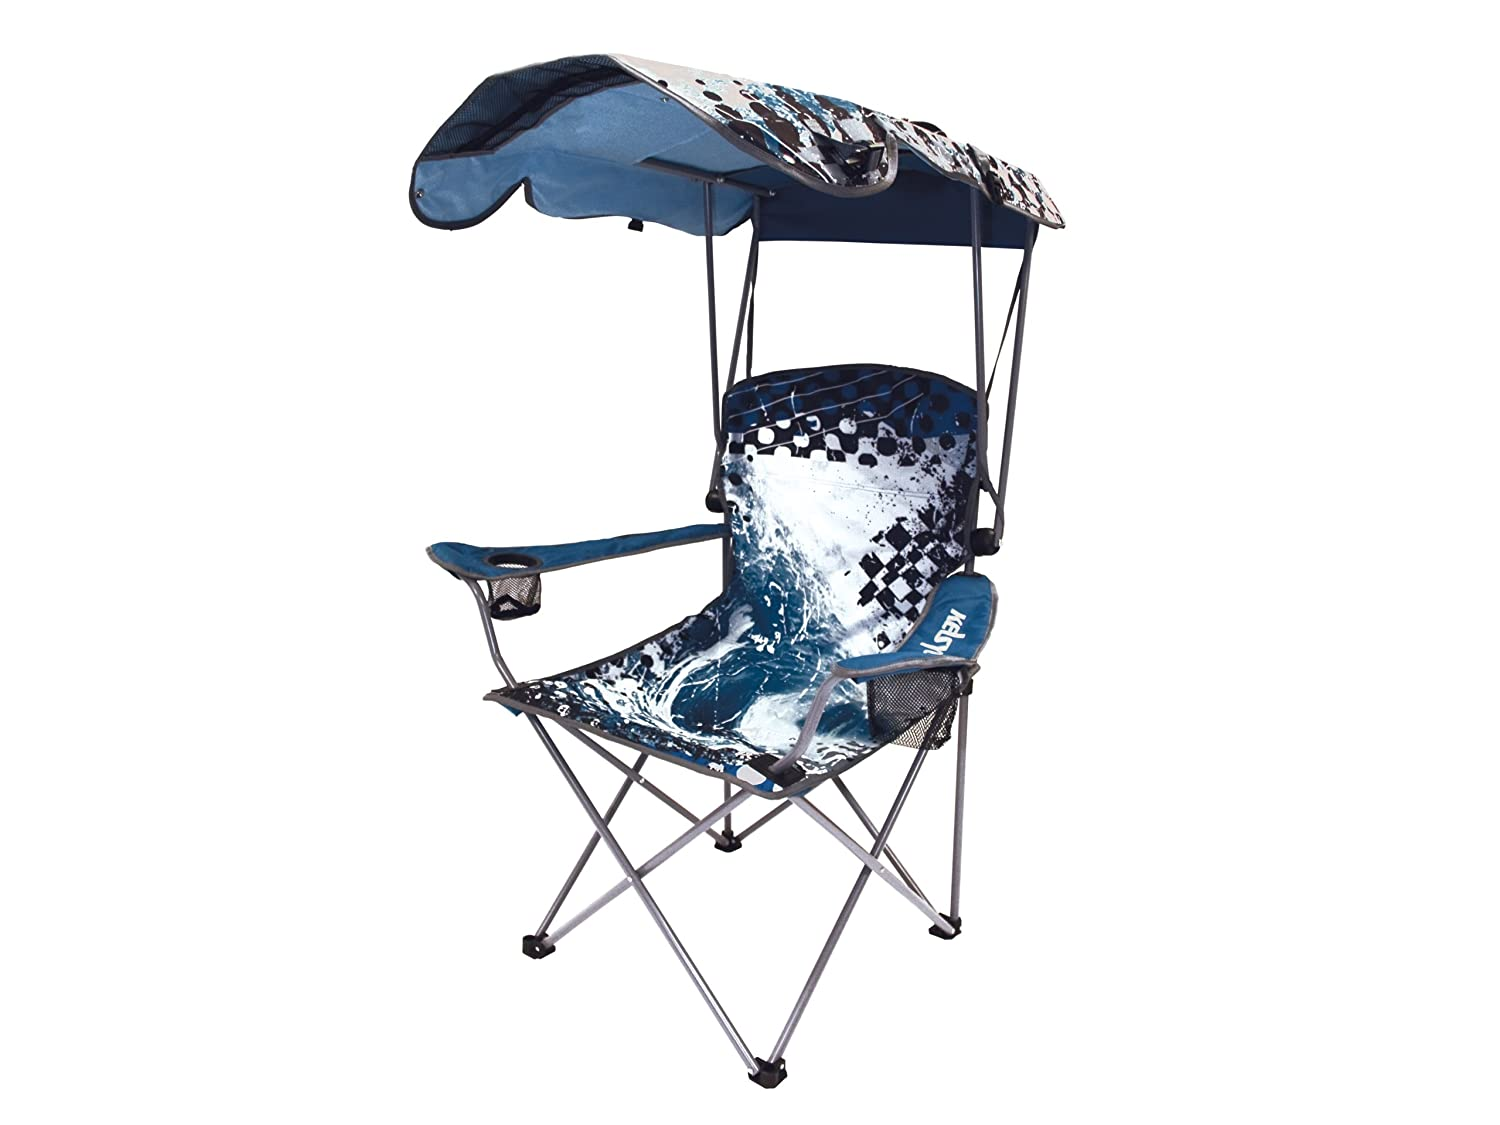 Wave Original Canopy Chair Blue Portable Beach Shade Cover Sun Pro